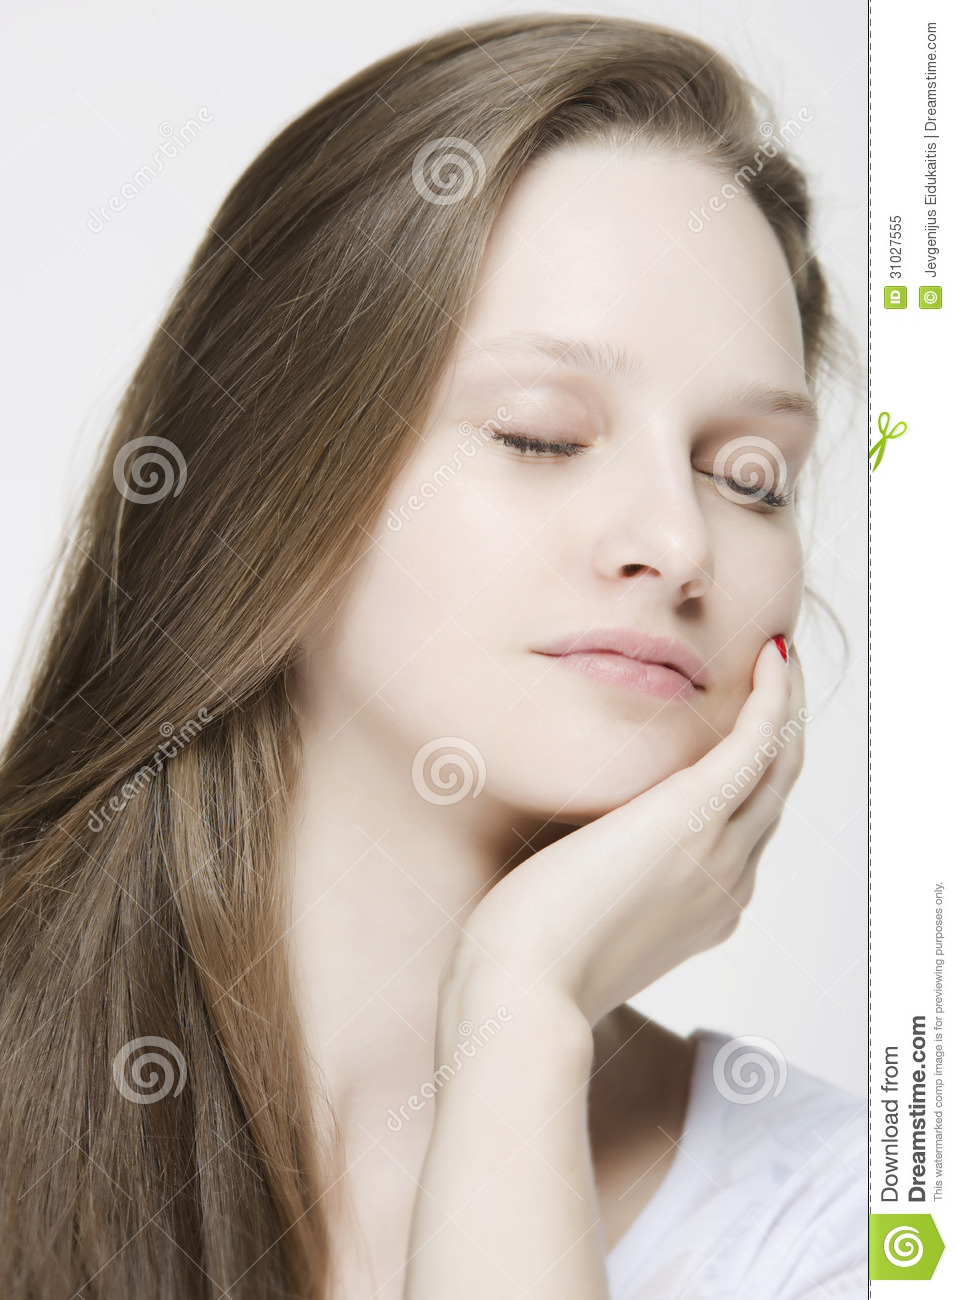 Sleeping Beauty Stock Image Image Of Care Attractive 31027555